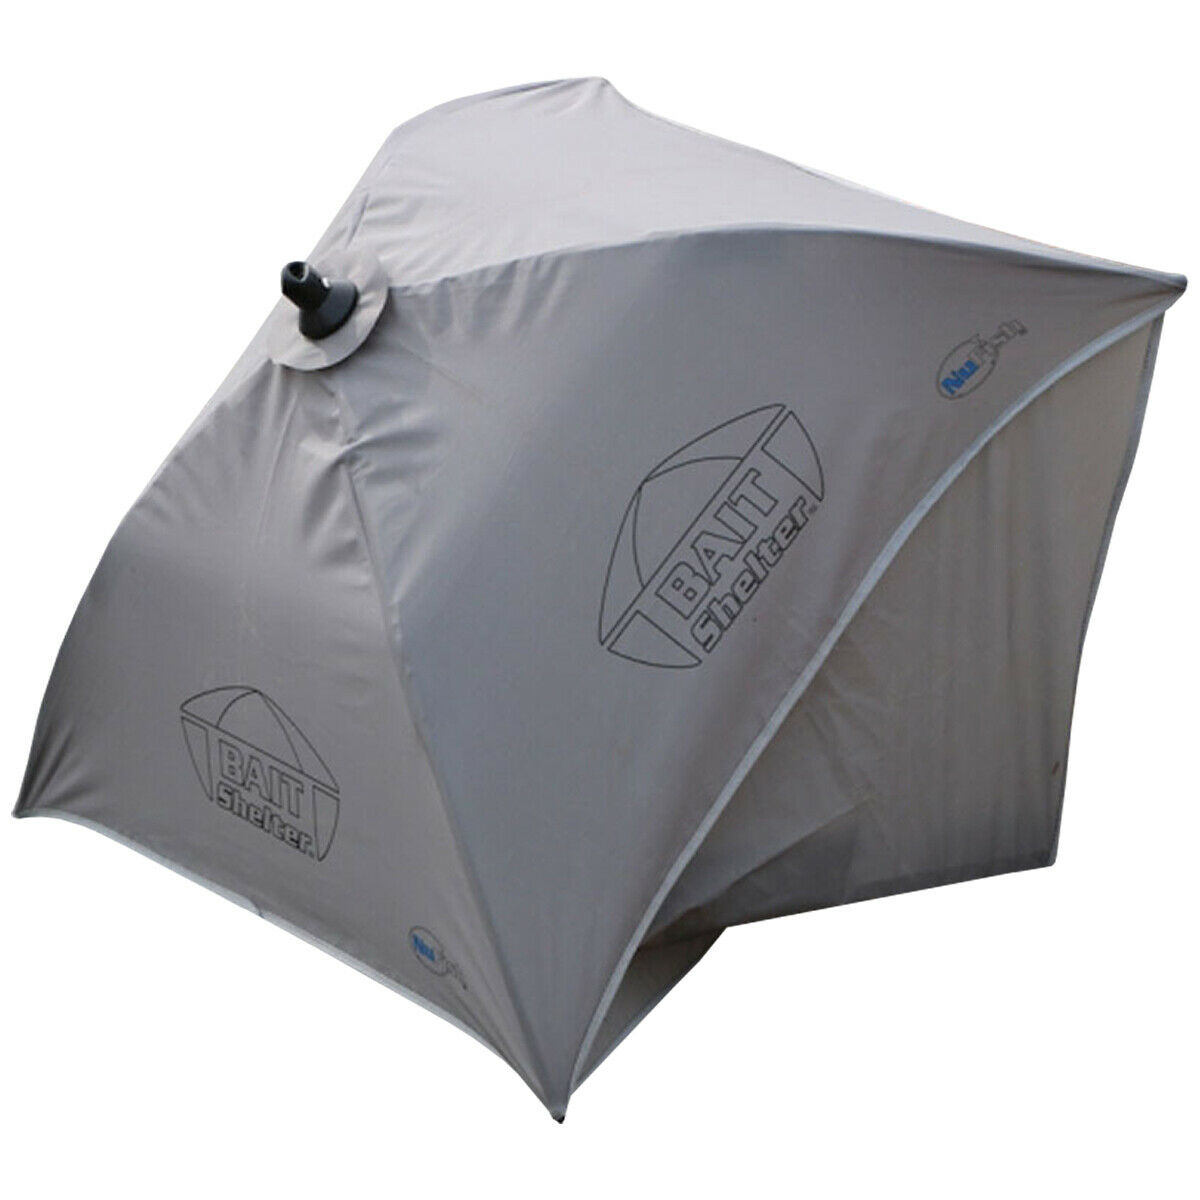 NEW NuFish Bait Shelter With Wings BS1